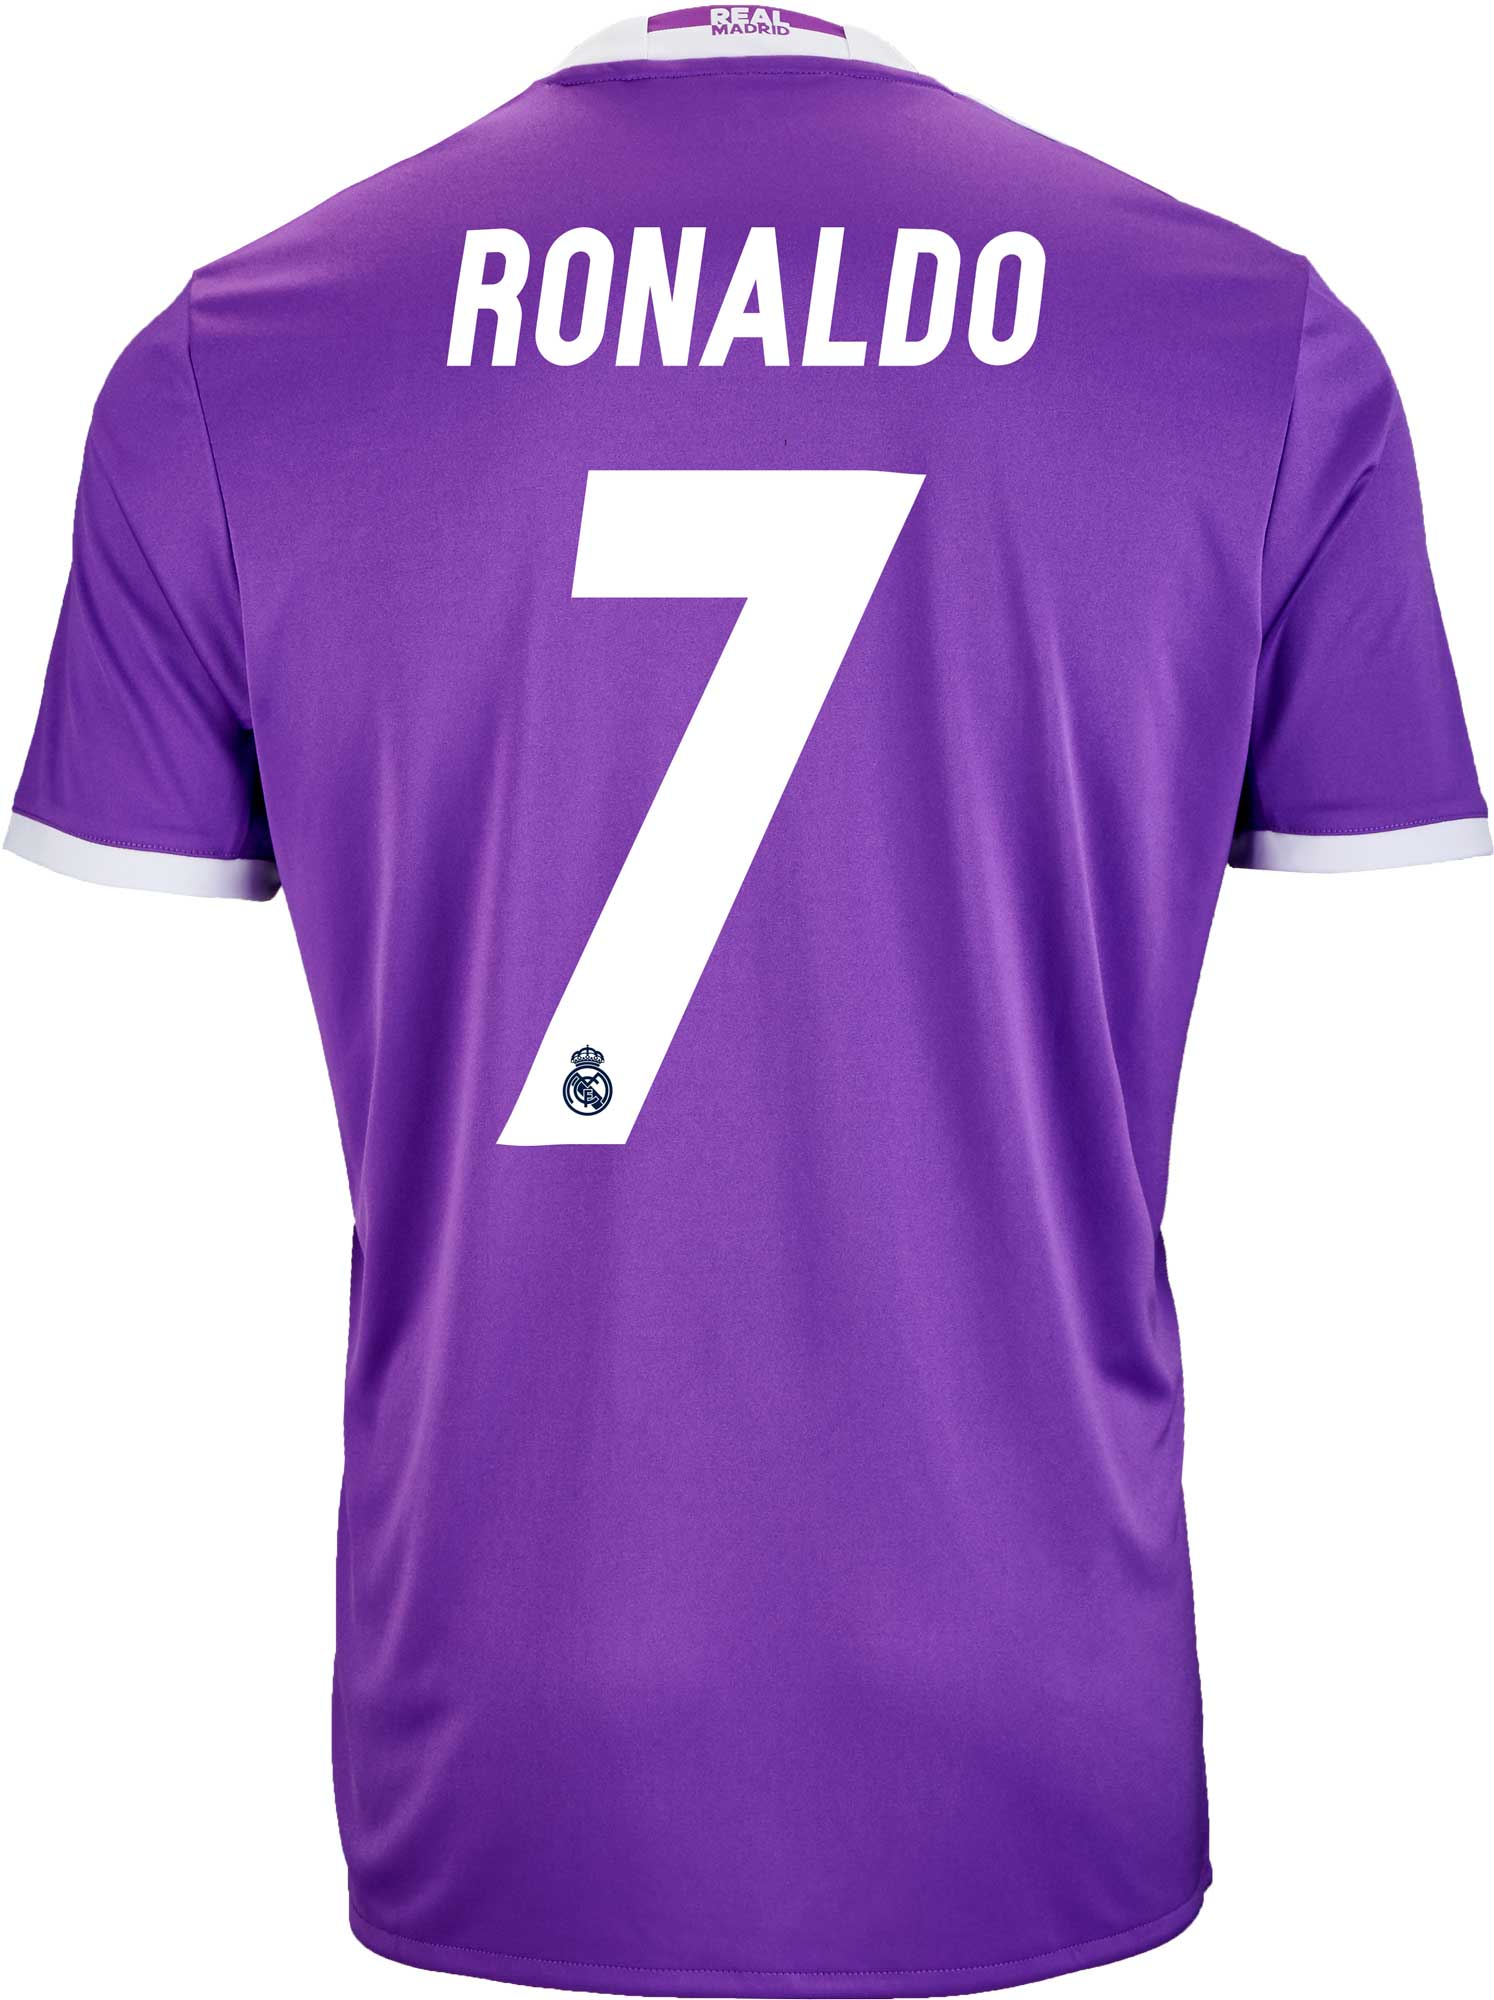 super popular 07603 e7275 adidas Ronaldo Real Madrid Jersey - 2016 Real Madrid Jerseys